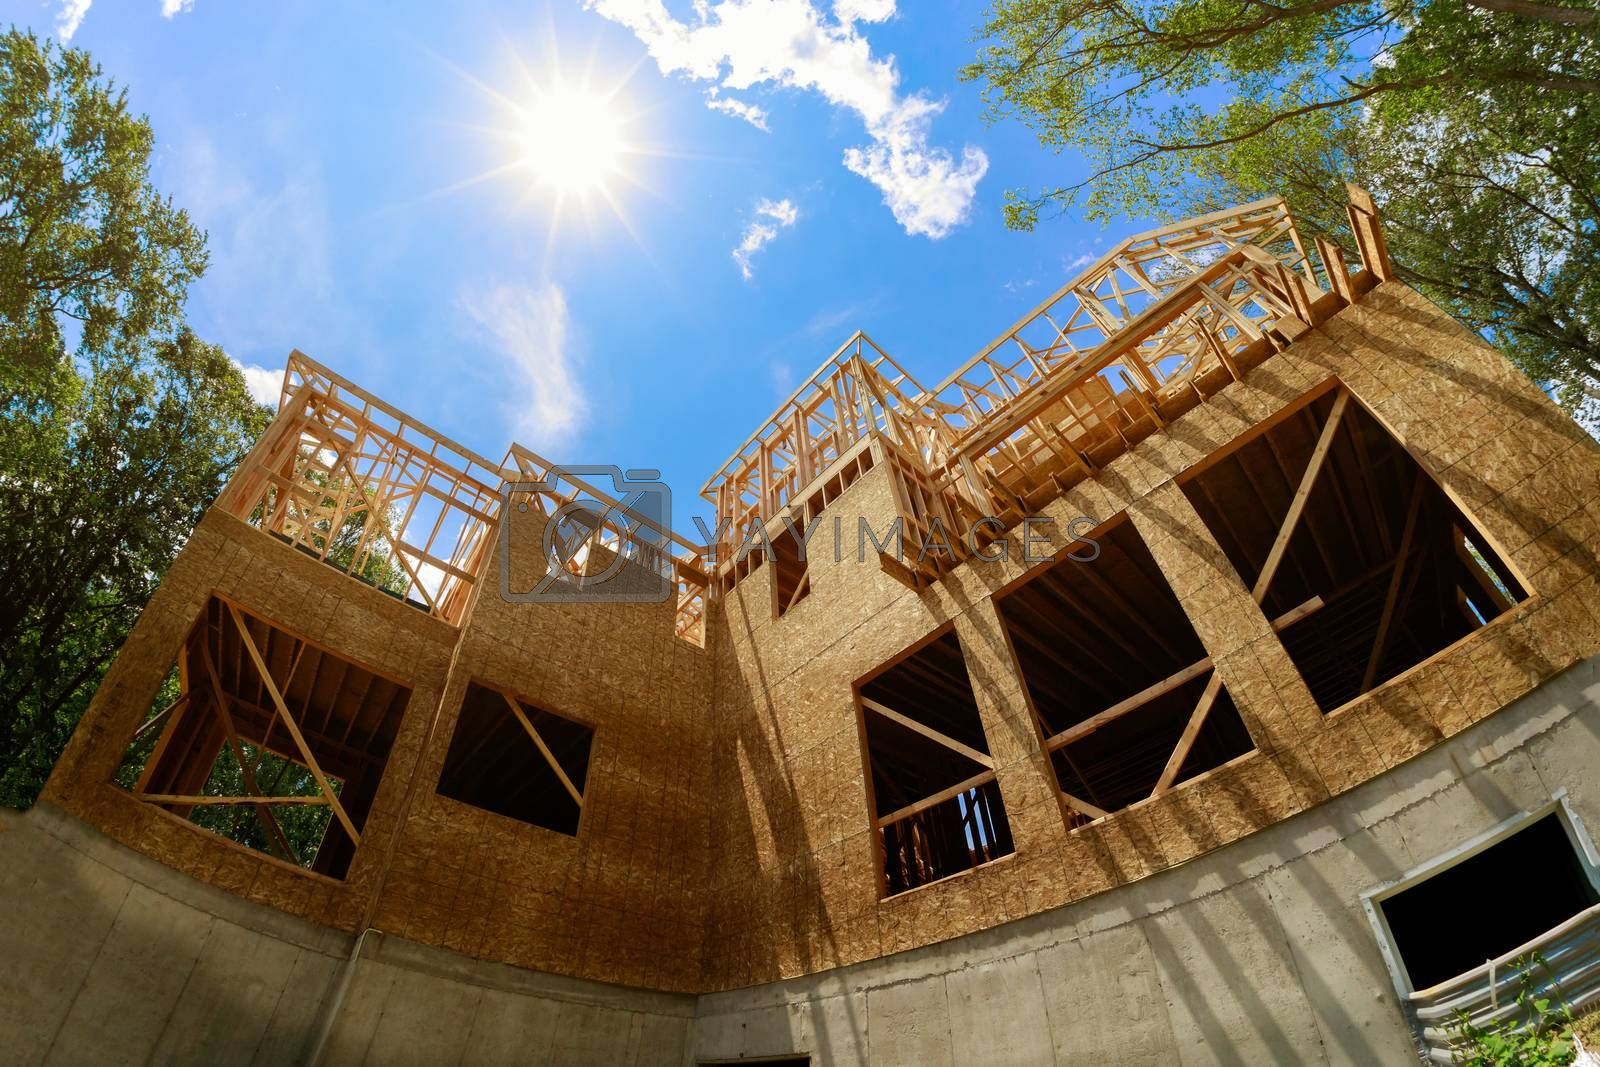 A roof on beam, built new home residential construction house framing against a blue sky